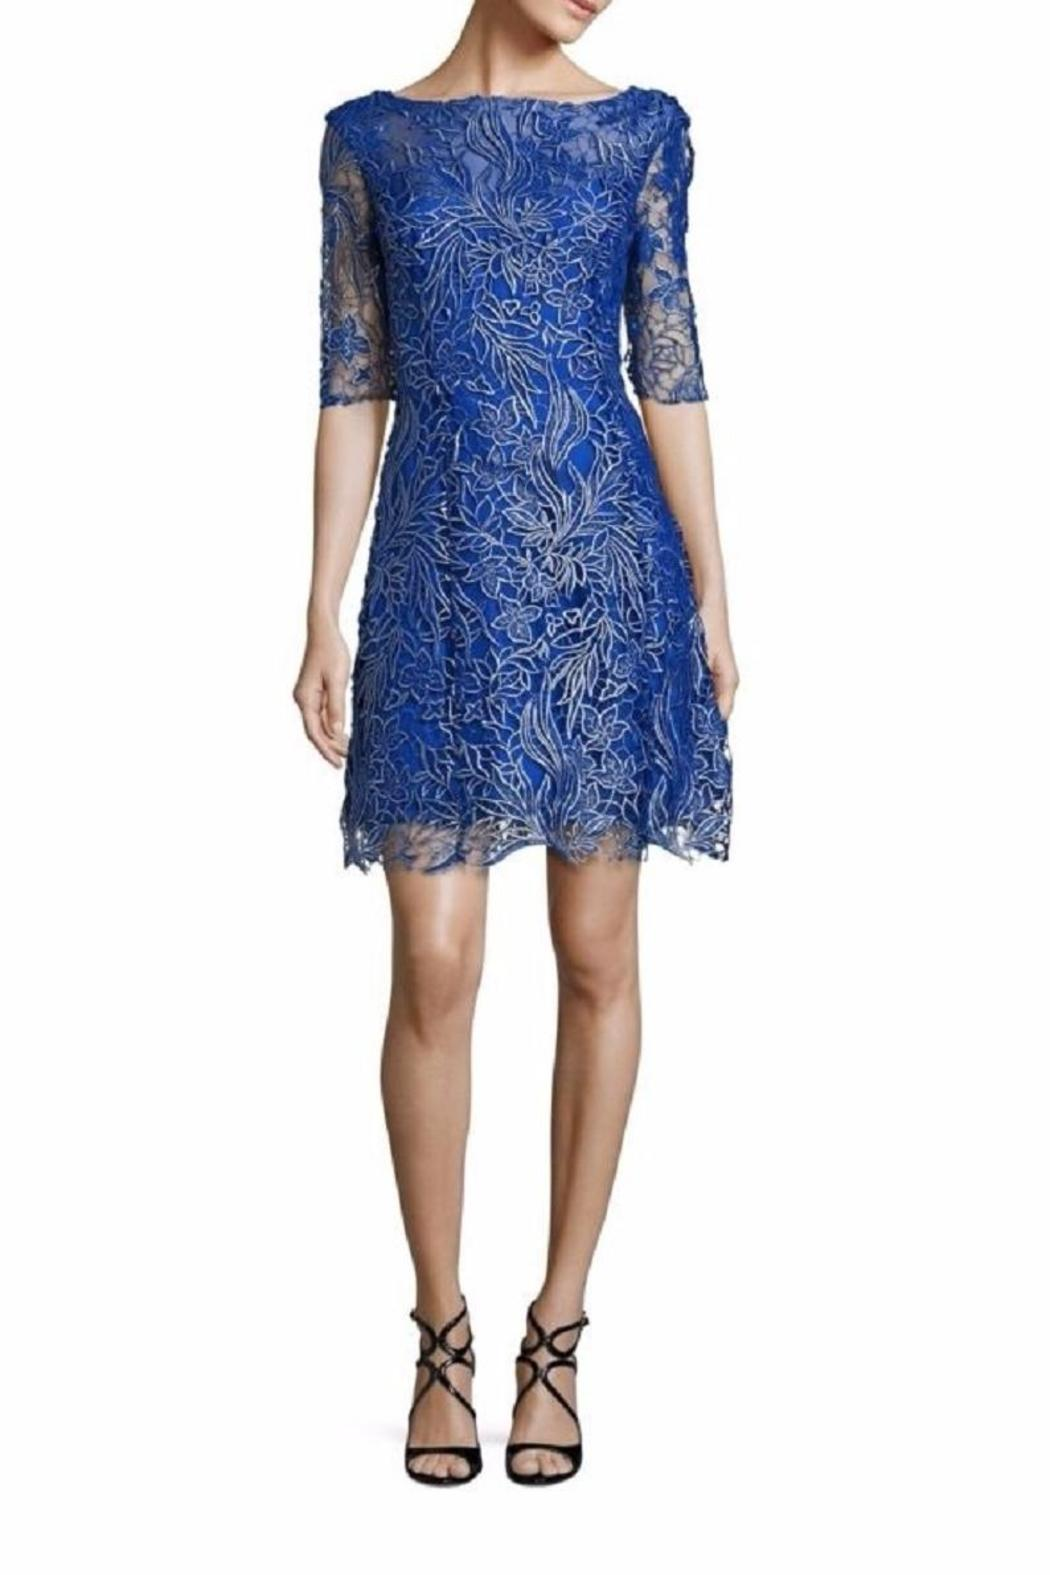 Kay Unger Floral Lace Dress from New Jersey by District 5 Boutique ...